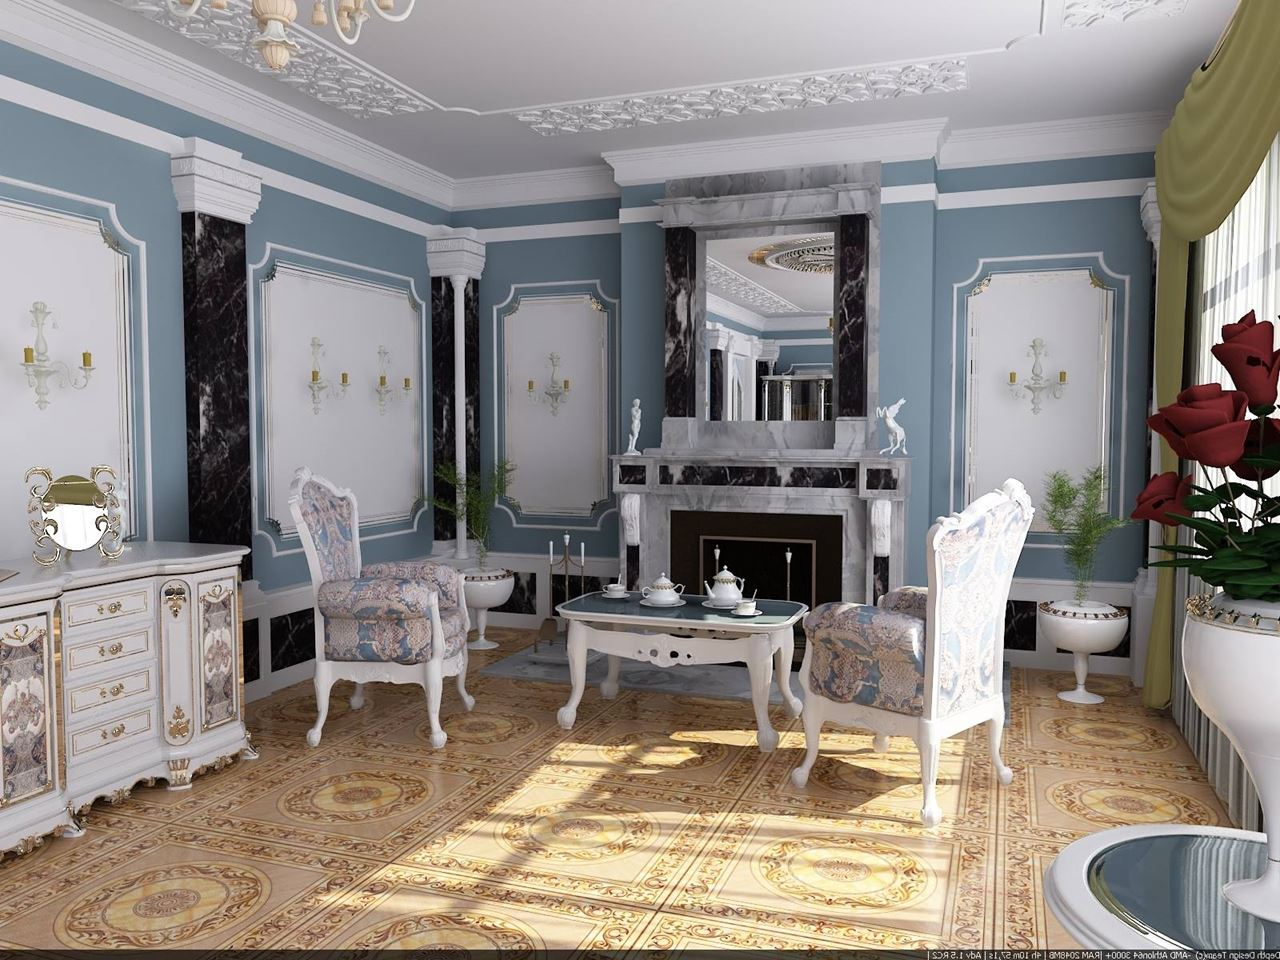 Rococo style interior design ideas - English style interior design rigor and comfort ...